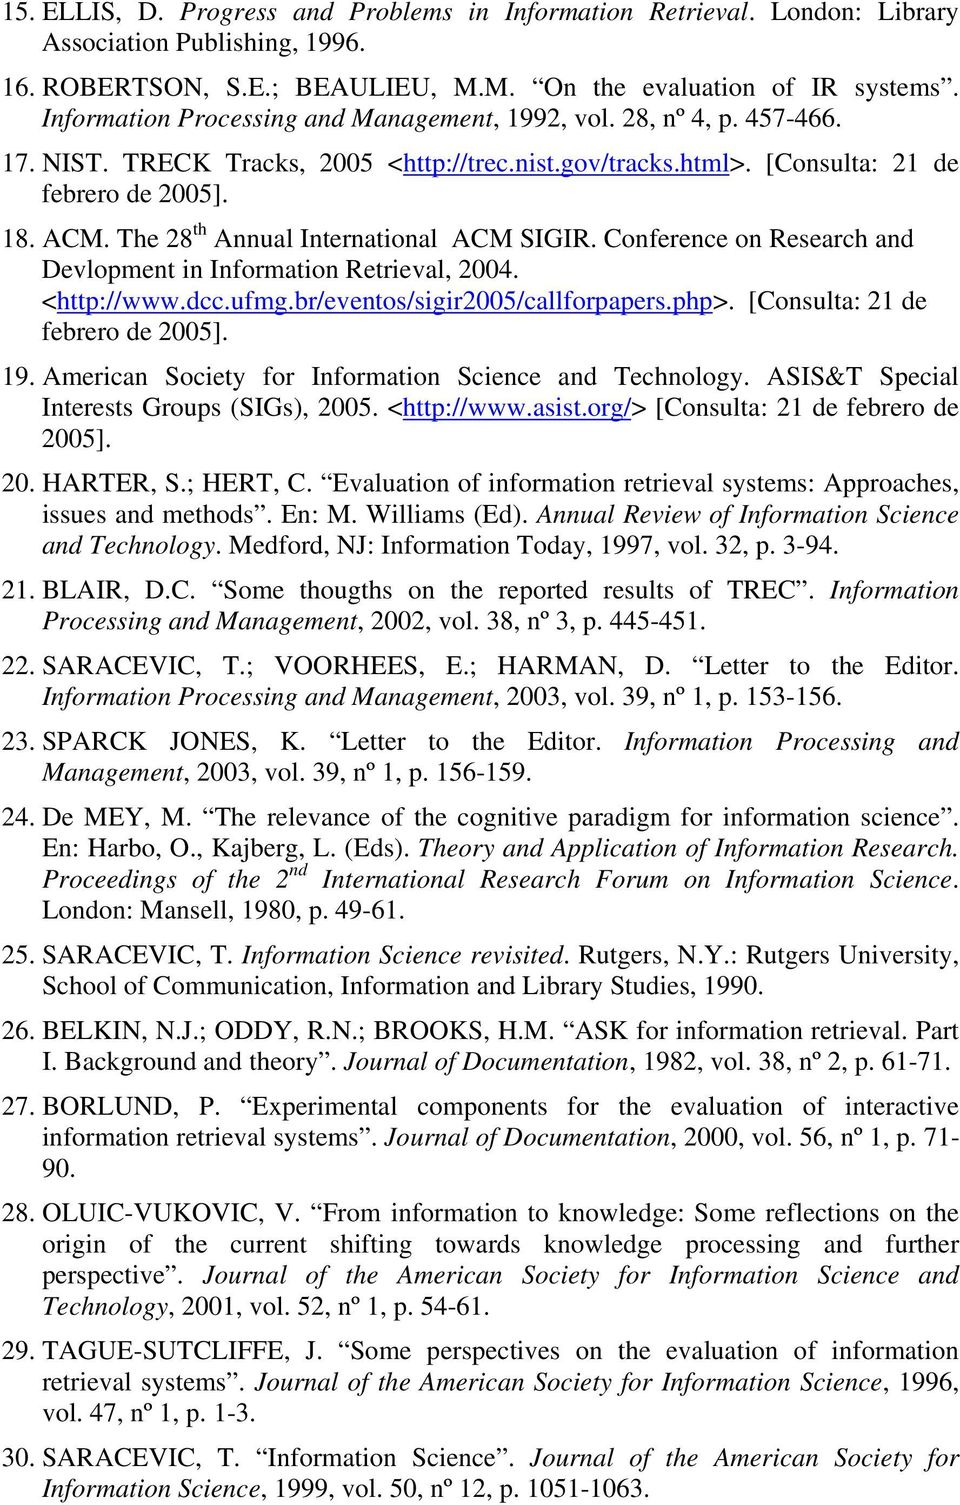 The 28 th Annual International ACM SIGIR. Conference on Research and Devlopment in Information Retrieval, 2004. <http://www.dcc.ufmg.br/eventos/sigir2005/callforpapers.php>.